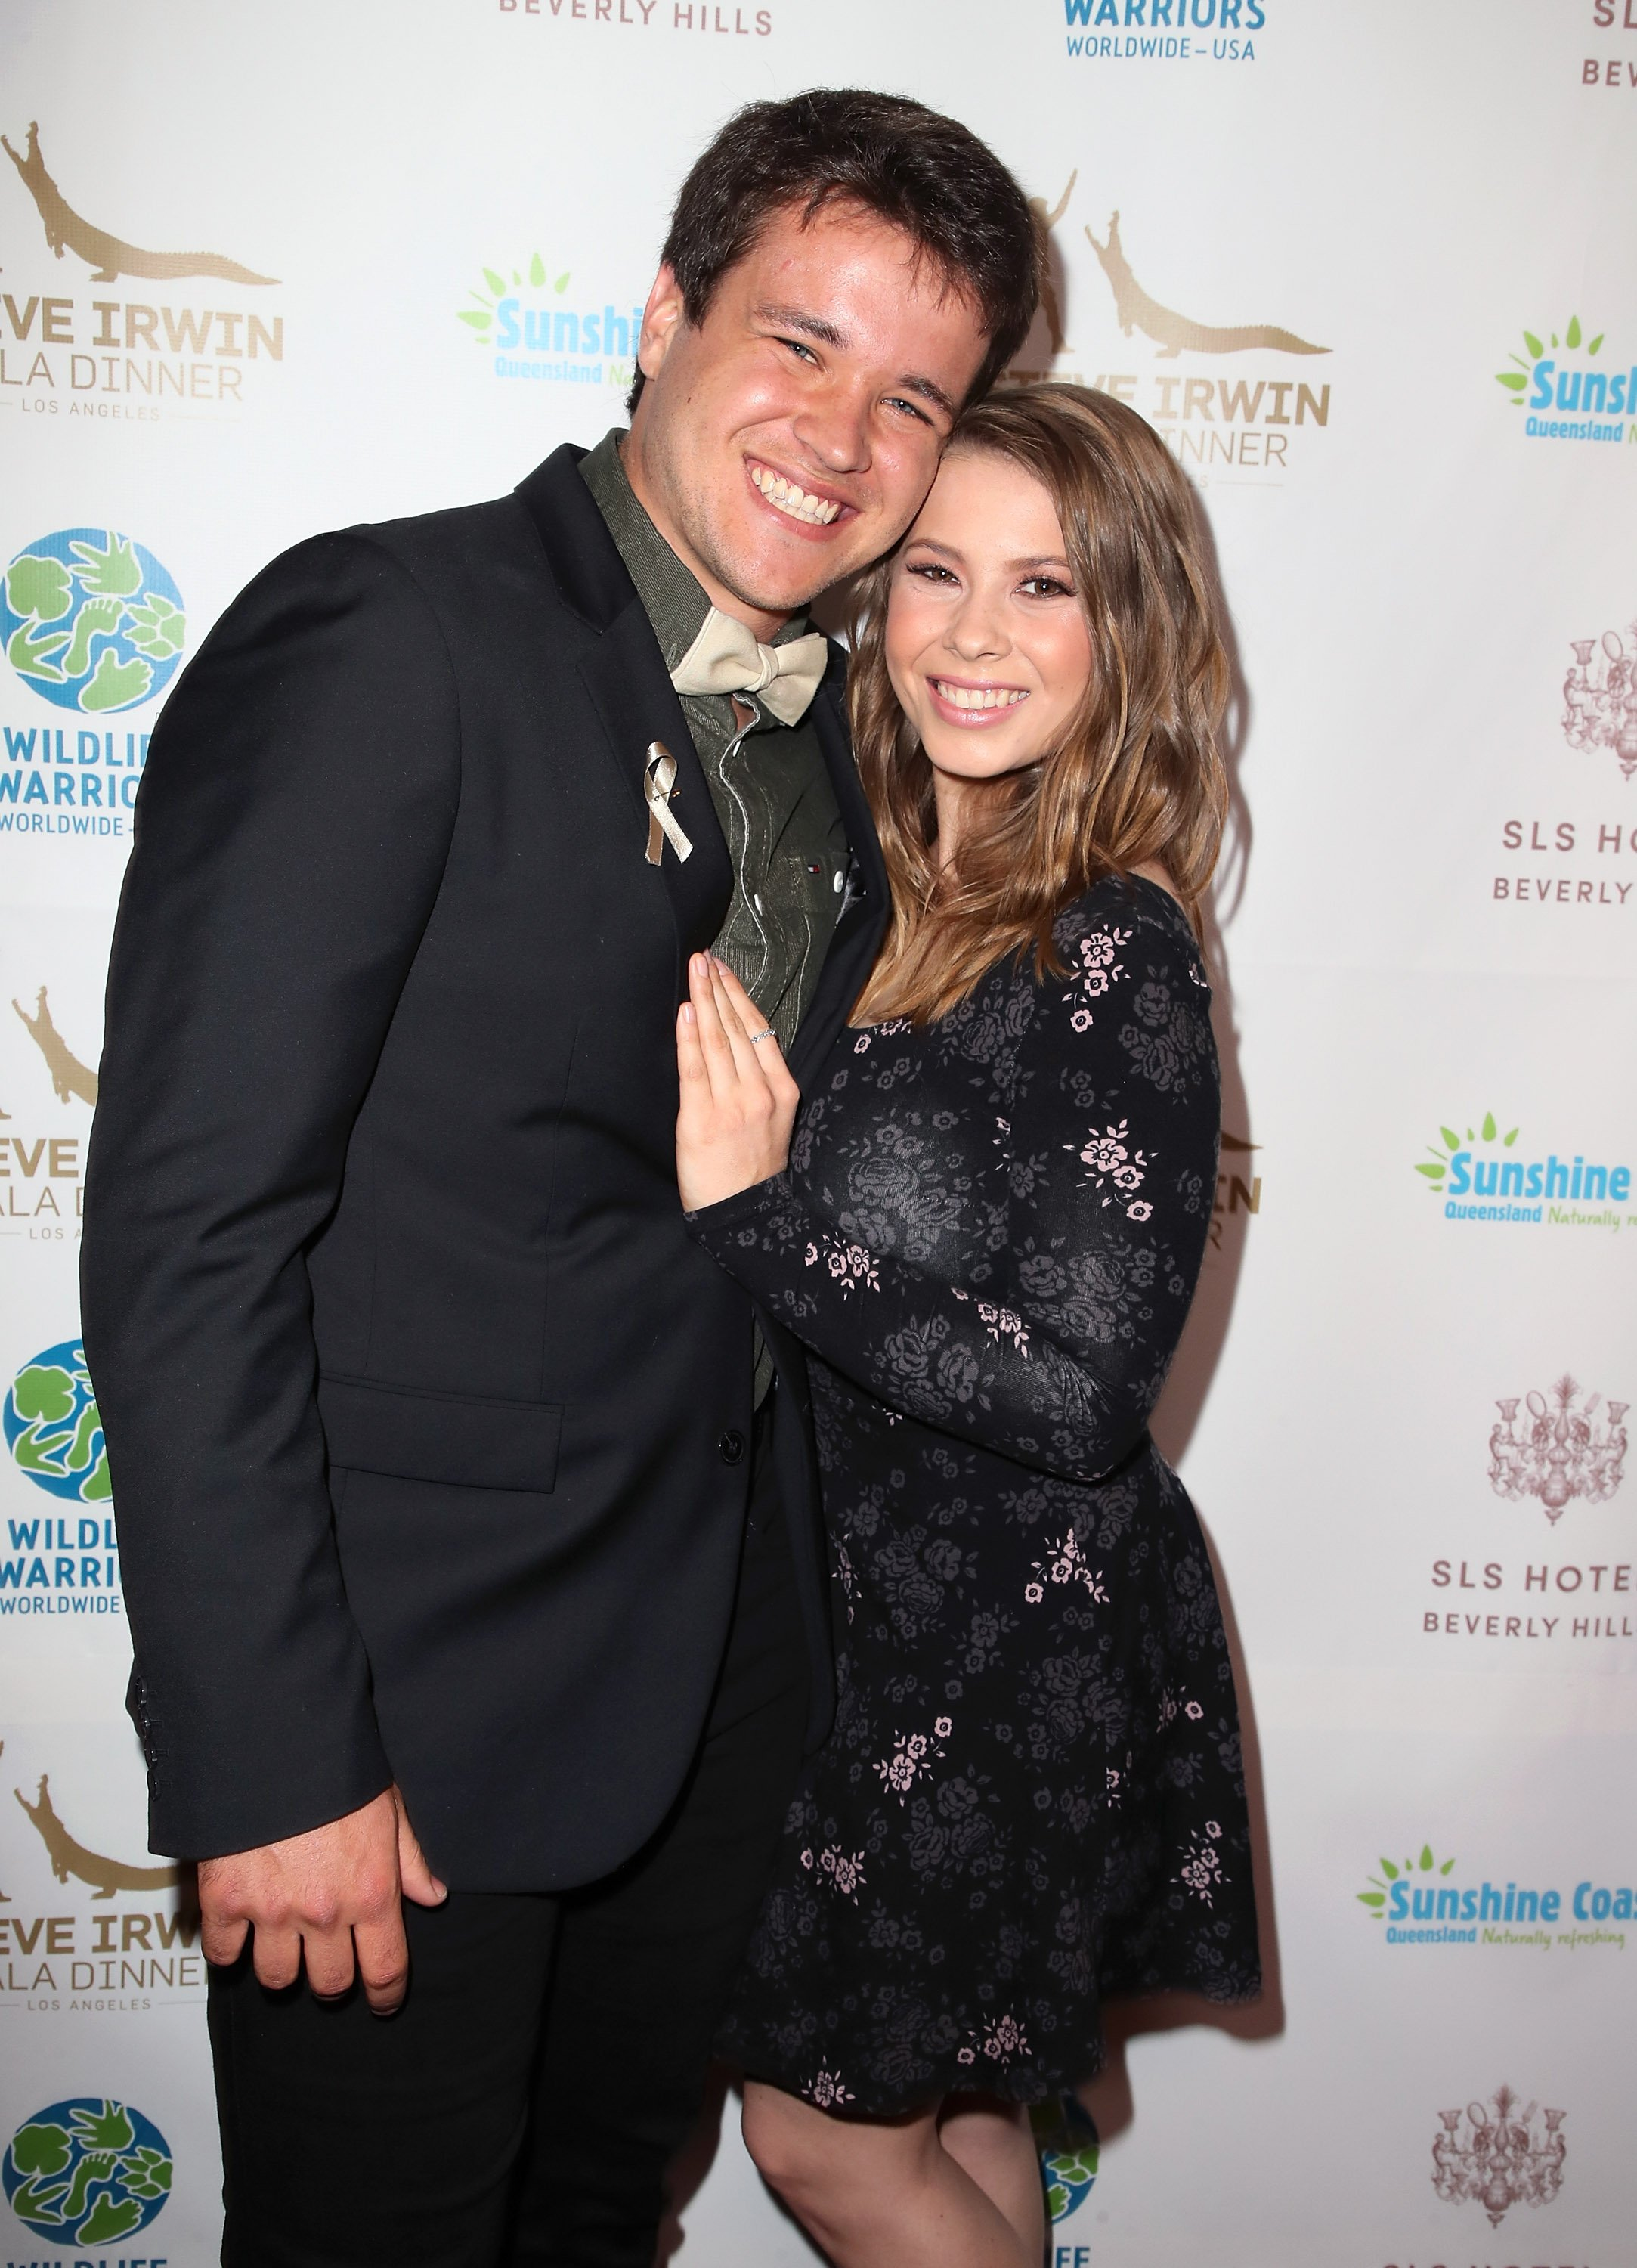 Chandler Powell Bindi Irwin attend the Steve Irwin Gala Dinner 2018 on May 5, 2018, in Beverly Hills, California. | Source: Getty Images.